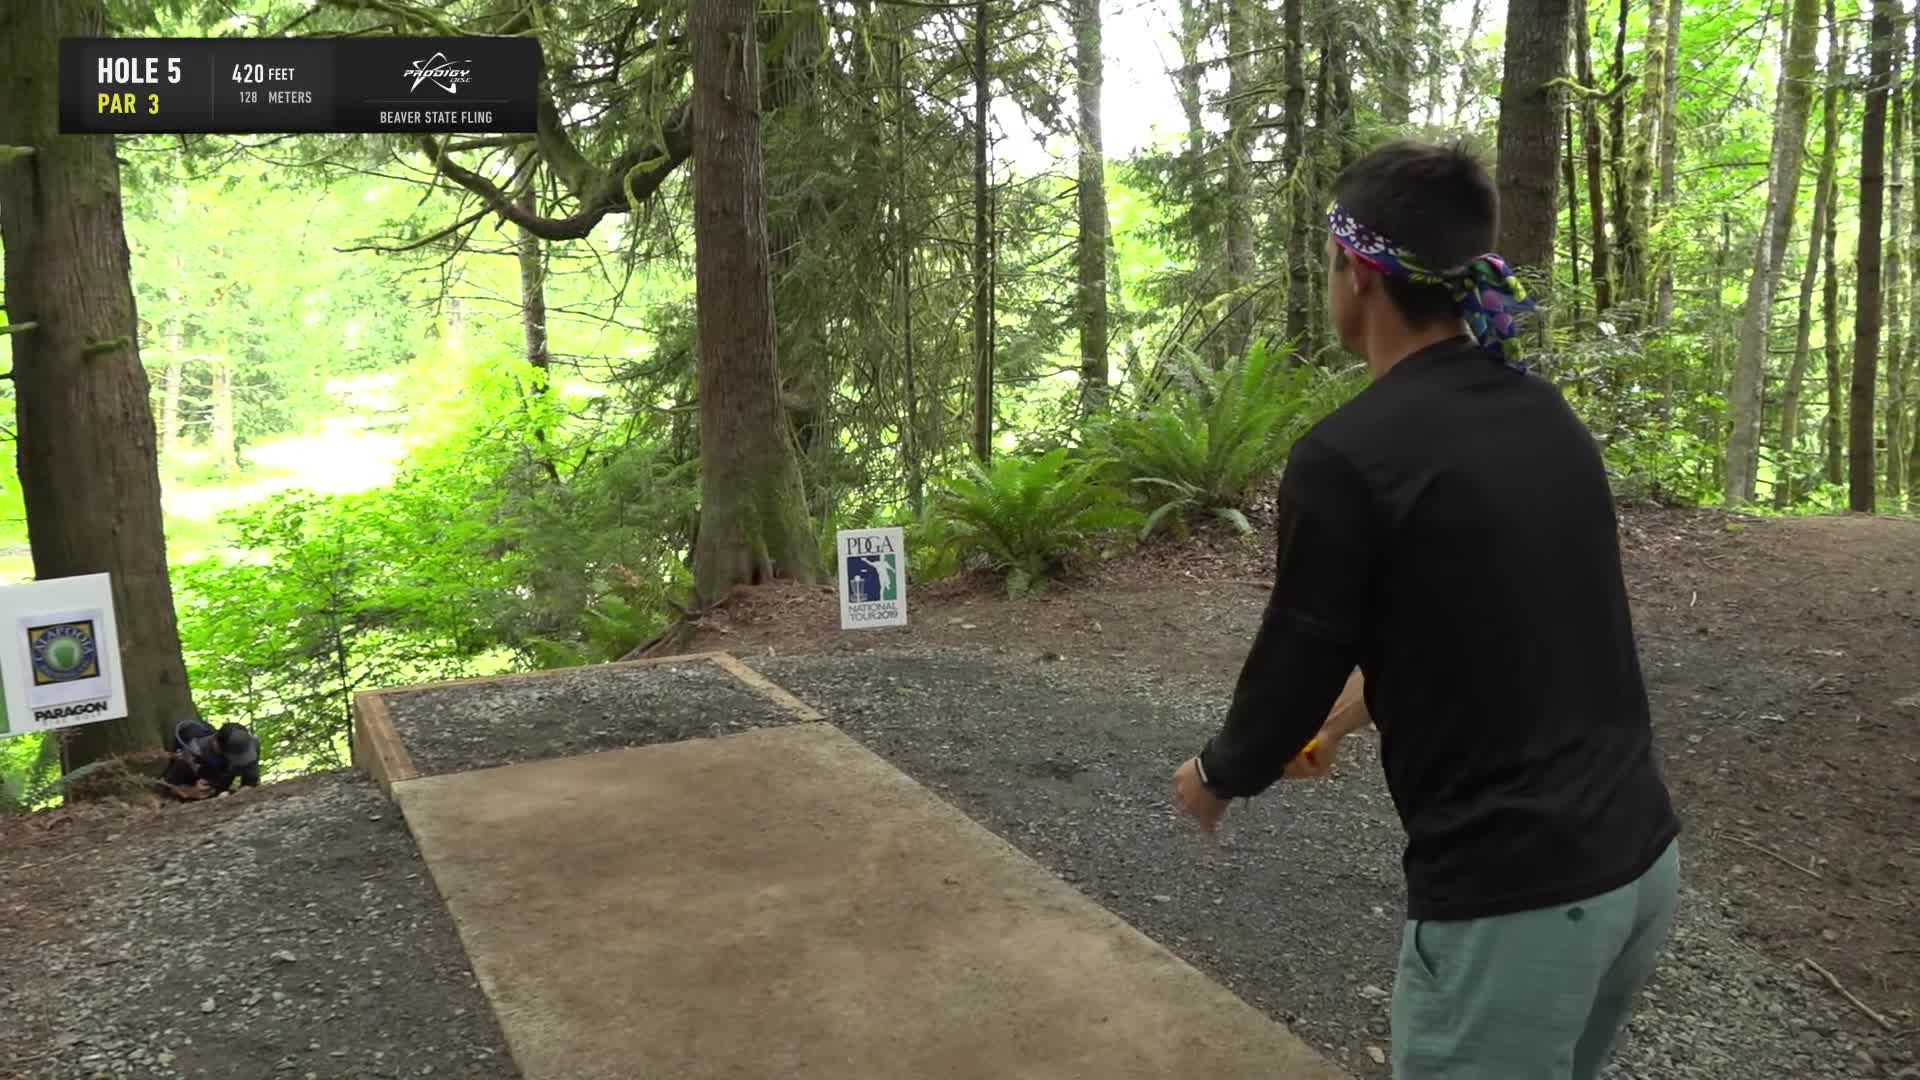 ace, bsf, dela, delaveaga, dgpt, dgwt, disc, disc golf, frolf, hole in one, masters cup, mcbeast, milo, nate sexton, nt, paul mcbeth, pdga, simon lizotte, tournament, worlds, 2019 Beaver State Fling - Round 3 Part 1 - AJ Risley hole 5 drive GIFs